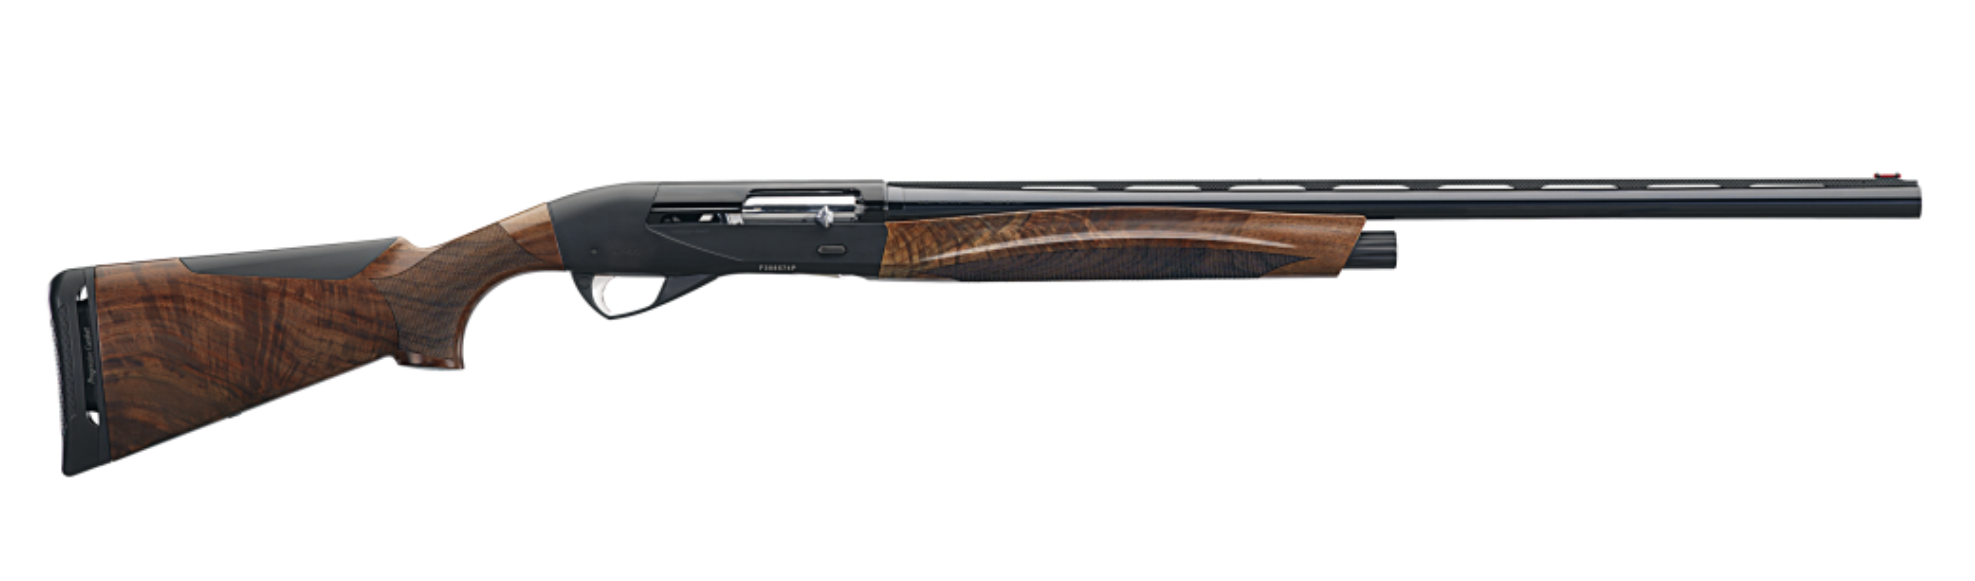 The Benelli Ethos is offered with the option of an anodized receiver that brings the MSRP to $1,999.